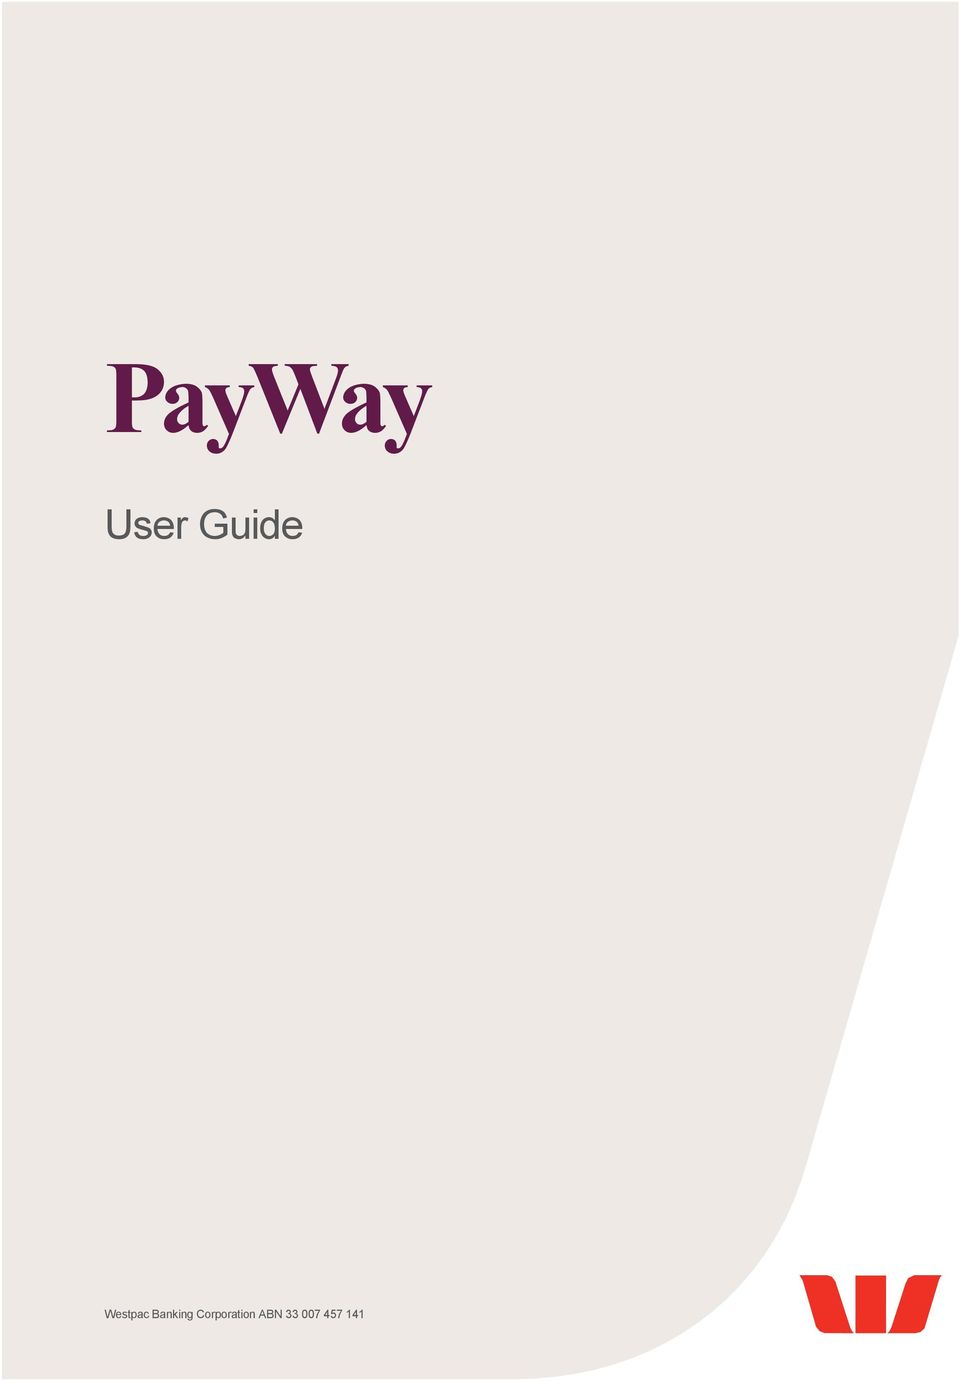 PayWay  User Guide  Westpac Banking Corporation ABN - PDF